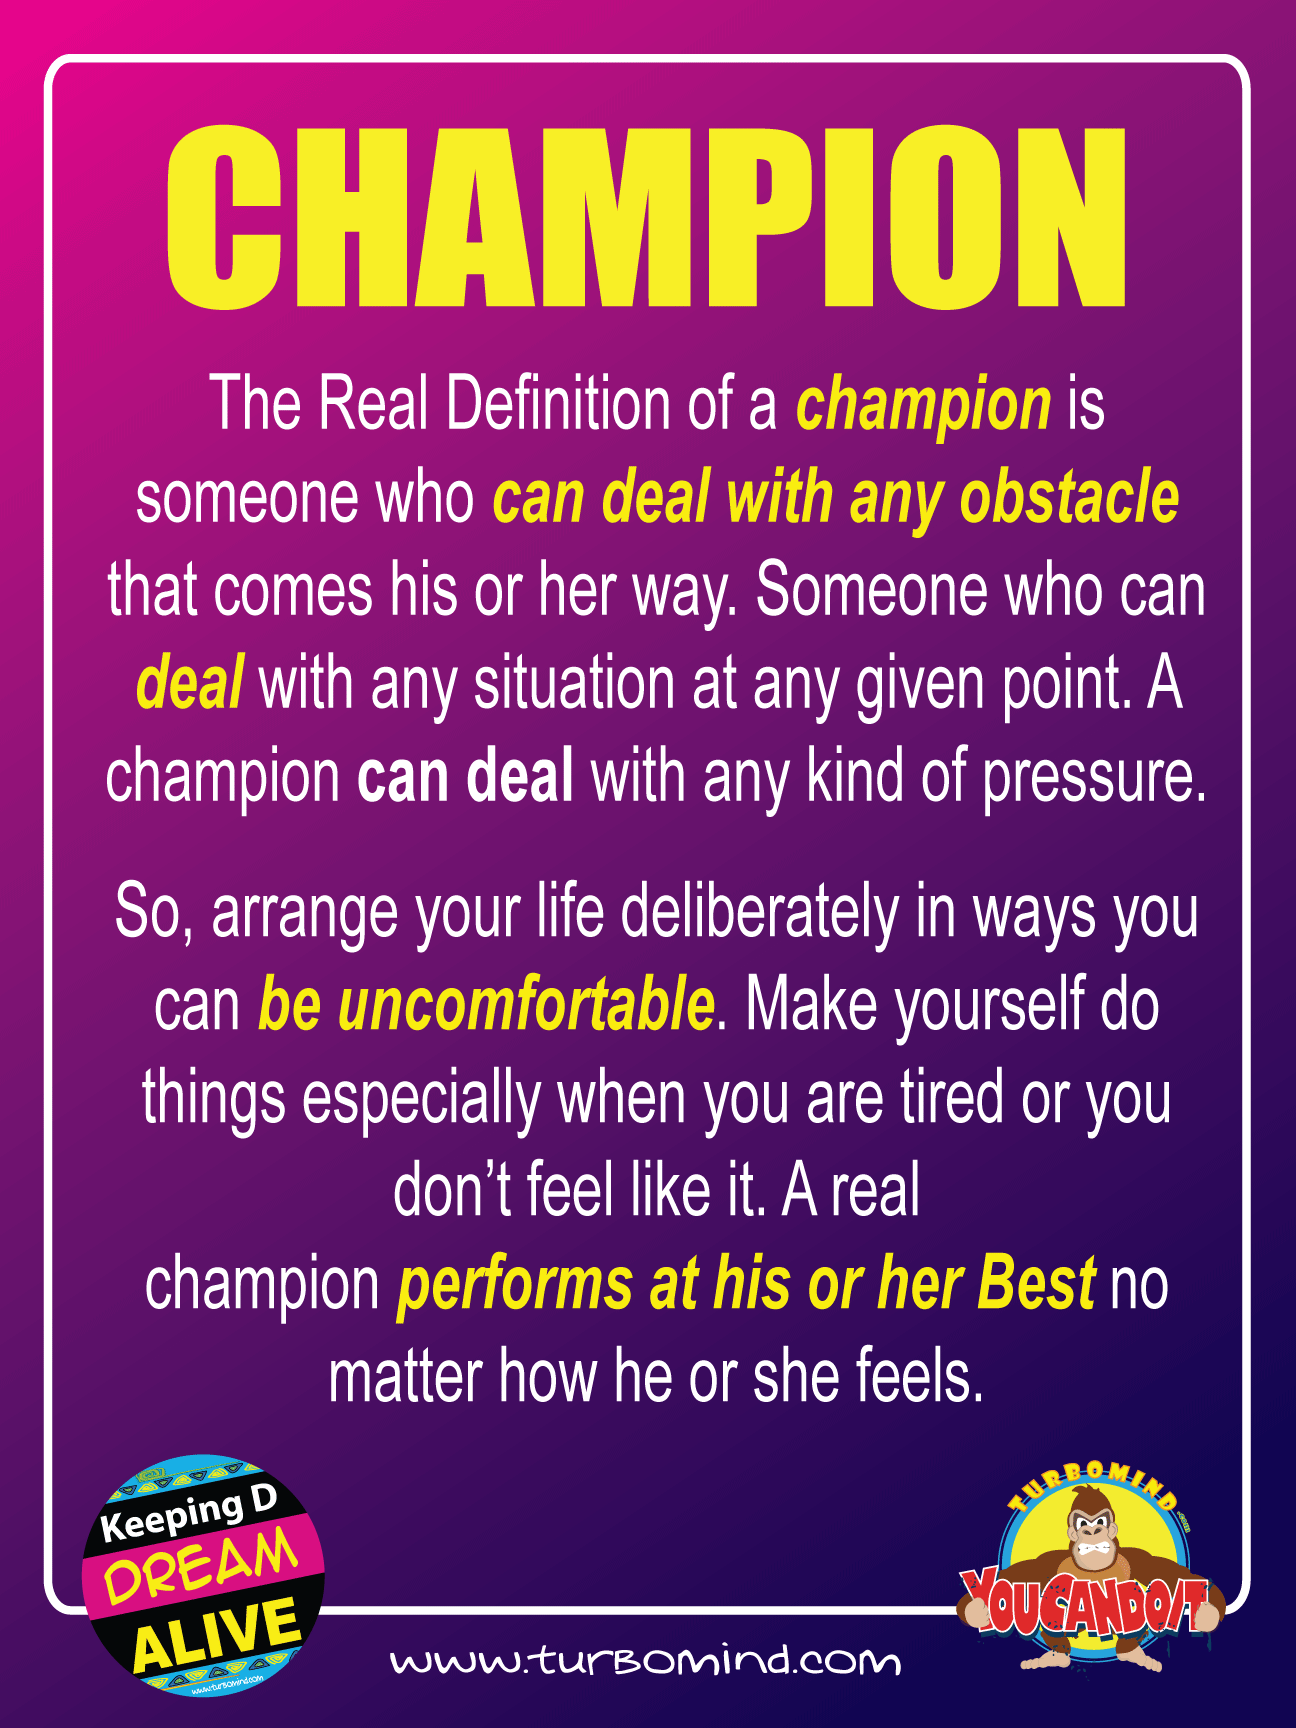 THE REAL DEFINITION OF A CHAMPION